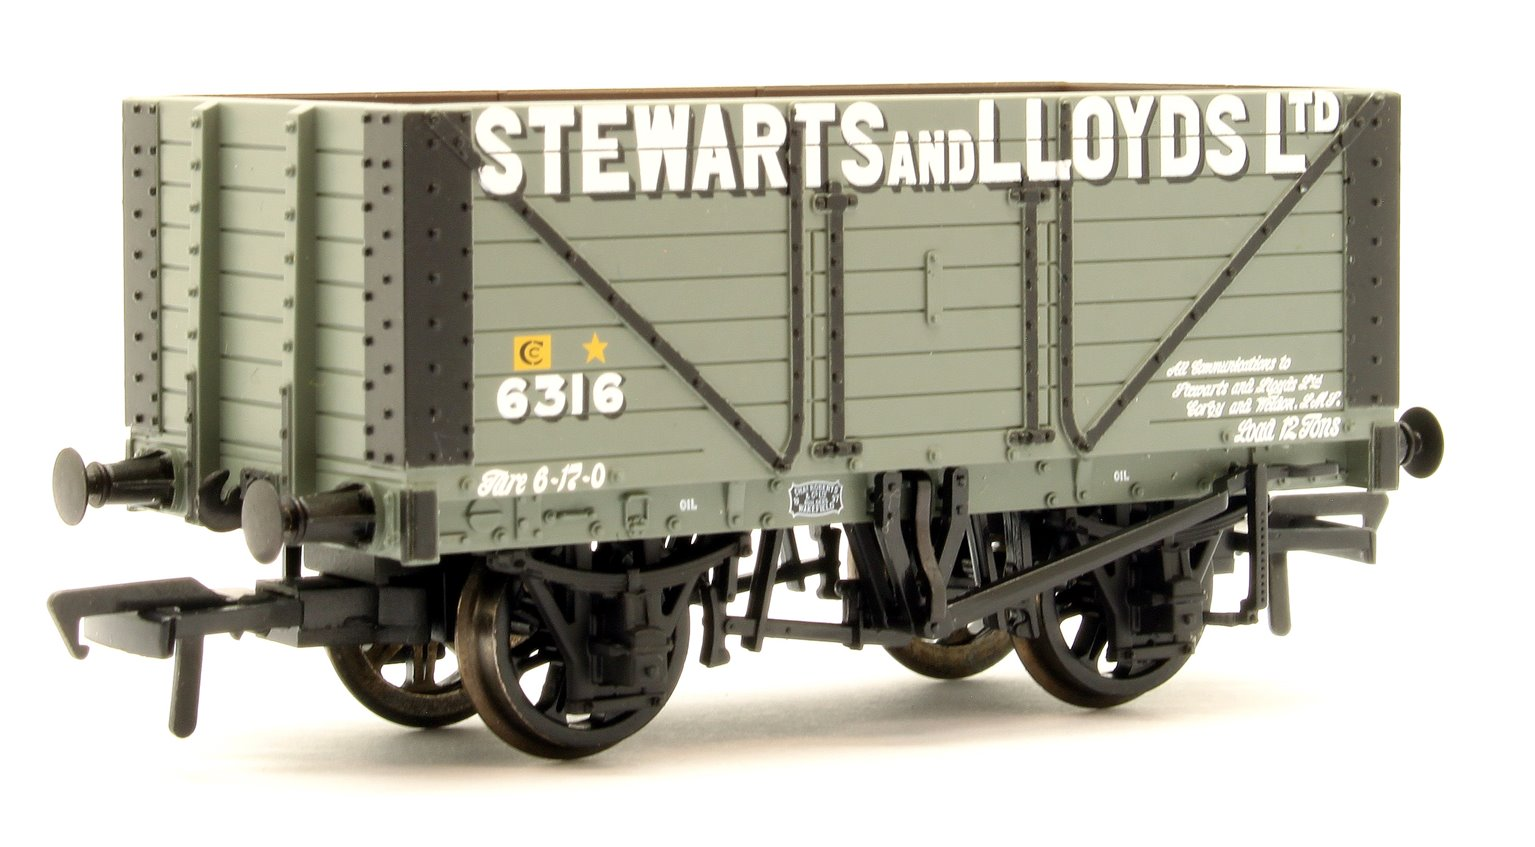 8 Plank Fixed End Wagon Fixed 'Stewart & Lloyds Ltd'